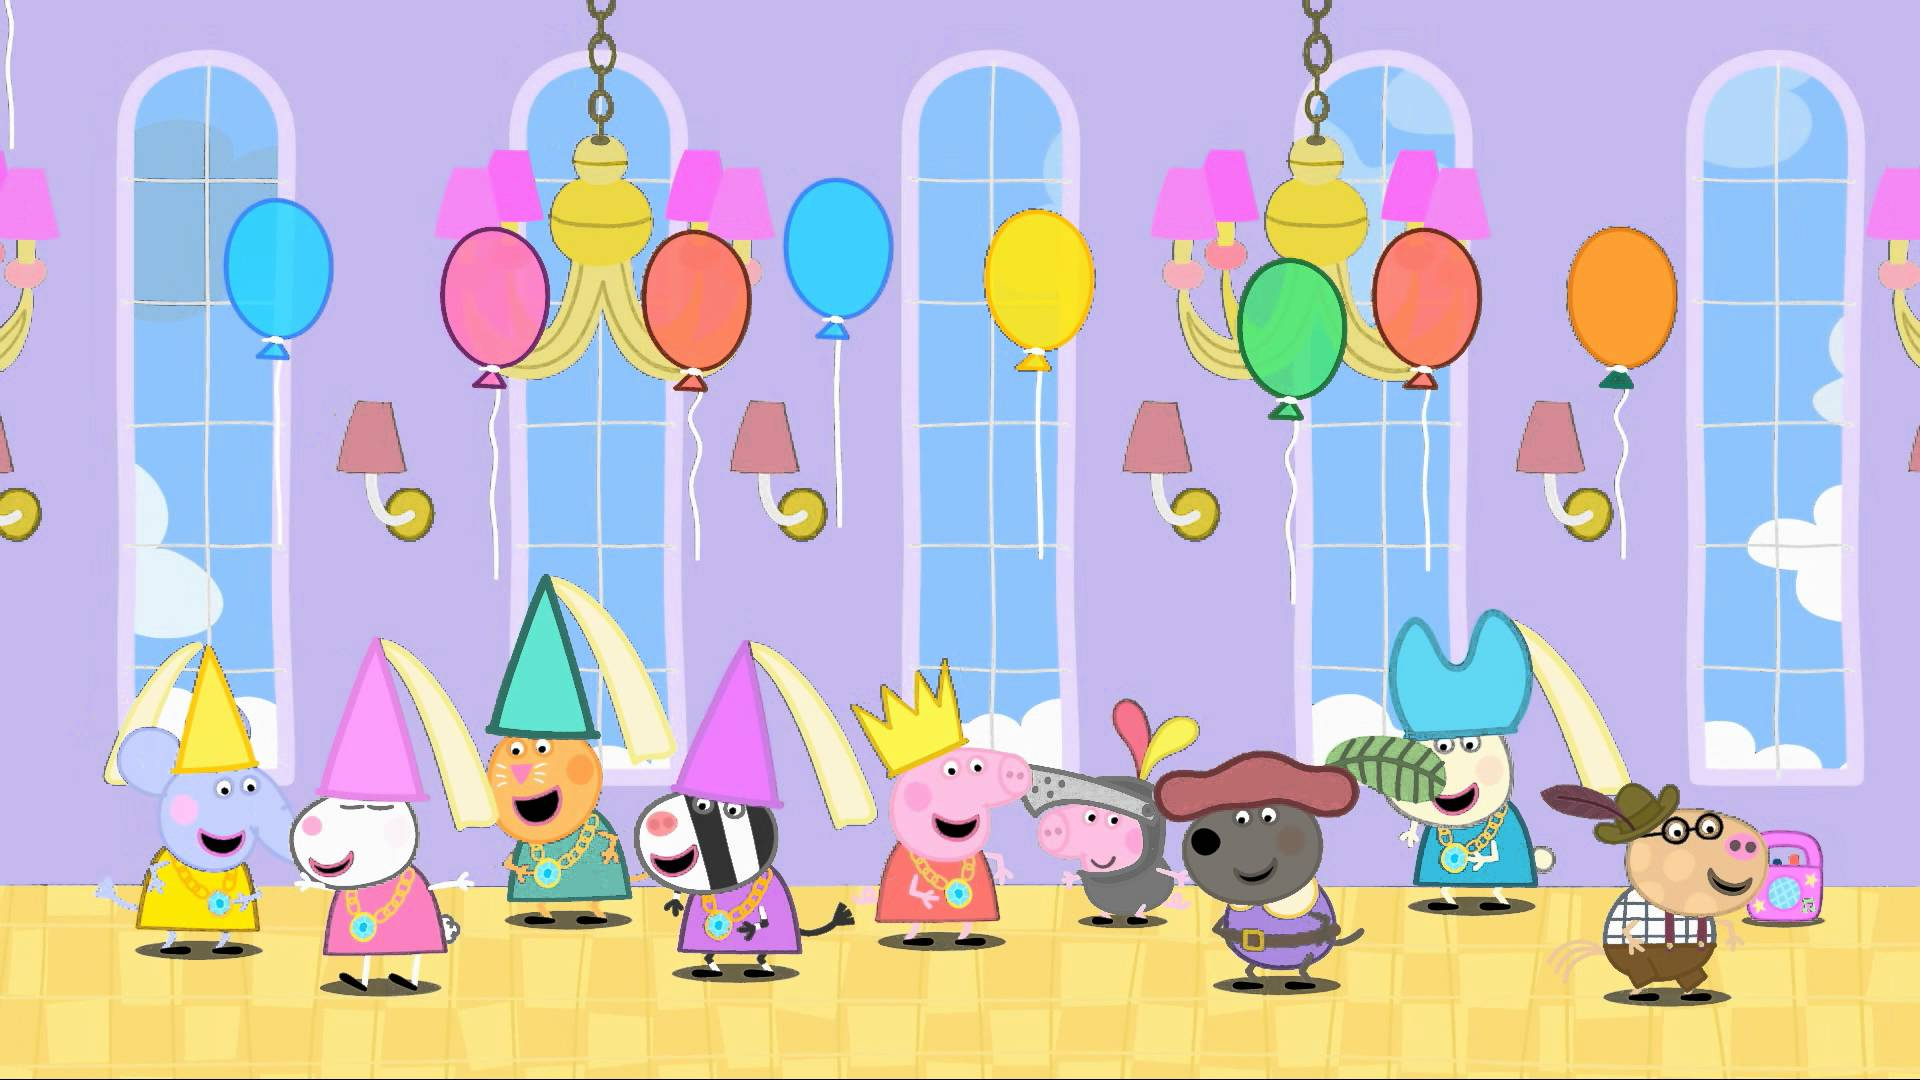 Peppa-Pig-Videos-Widescreen-HD-JPEG-Image-1920-%C3%97-1080-pixels-Scaled-wallpaper-wp3609426